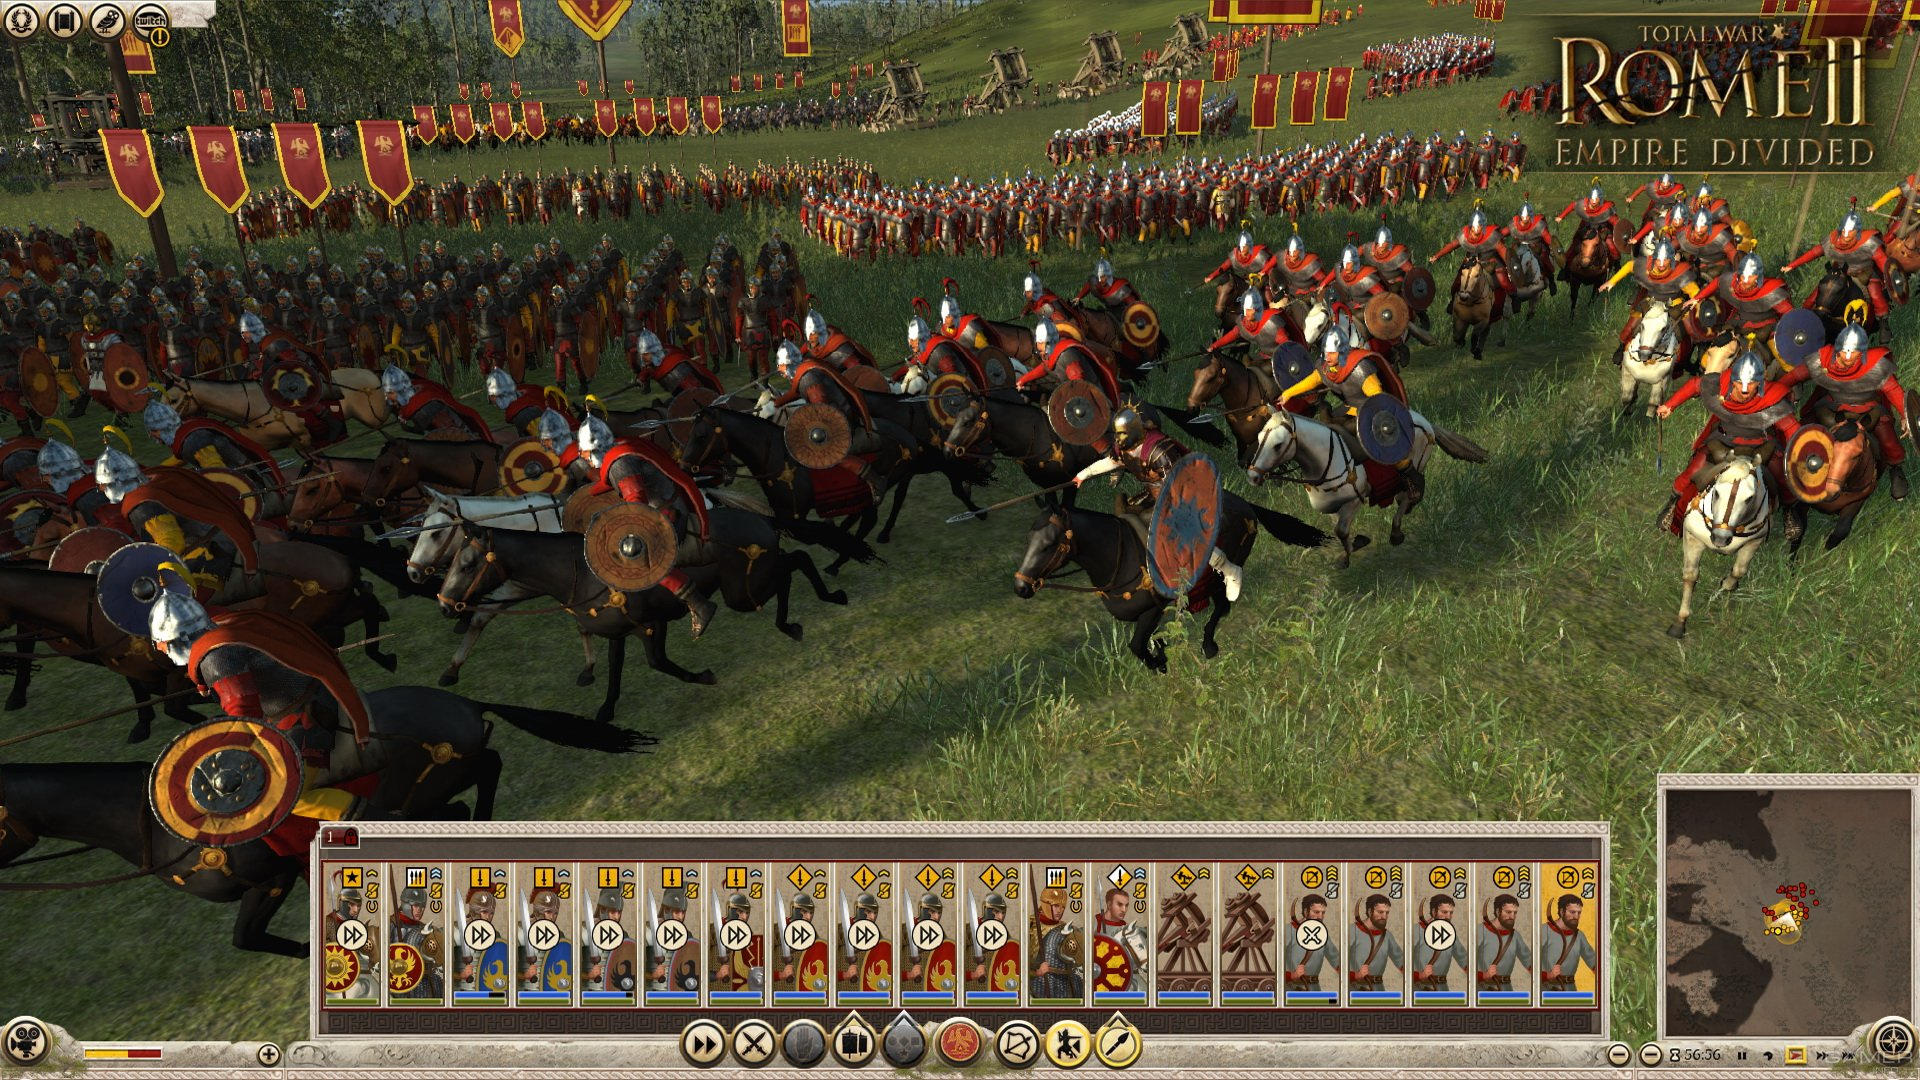 Анонс дополнения Empire Divided для Total War: ROME II